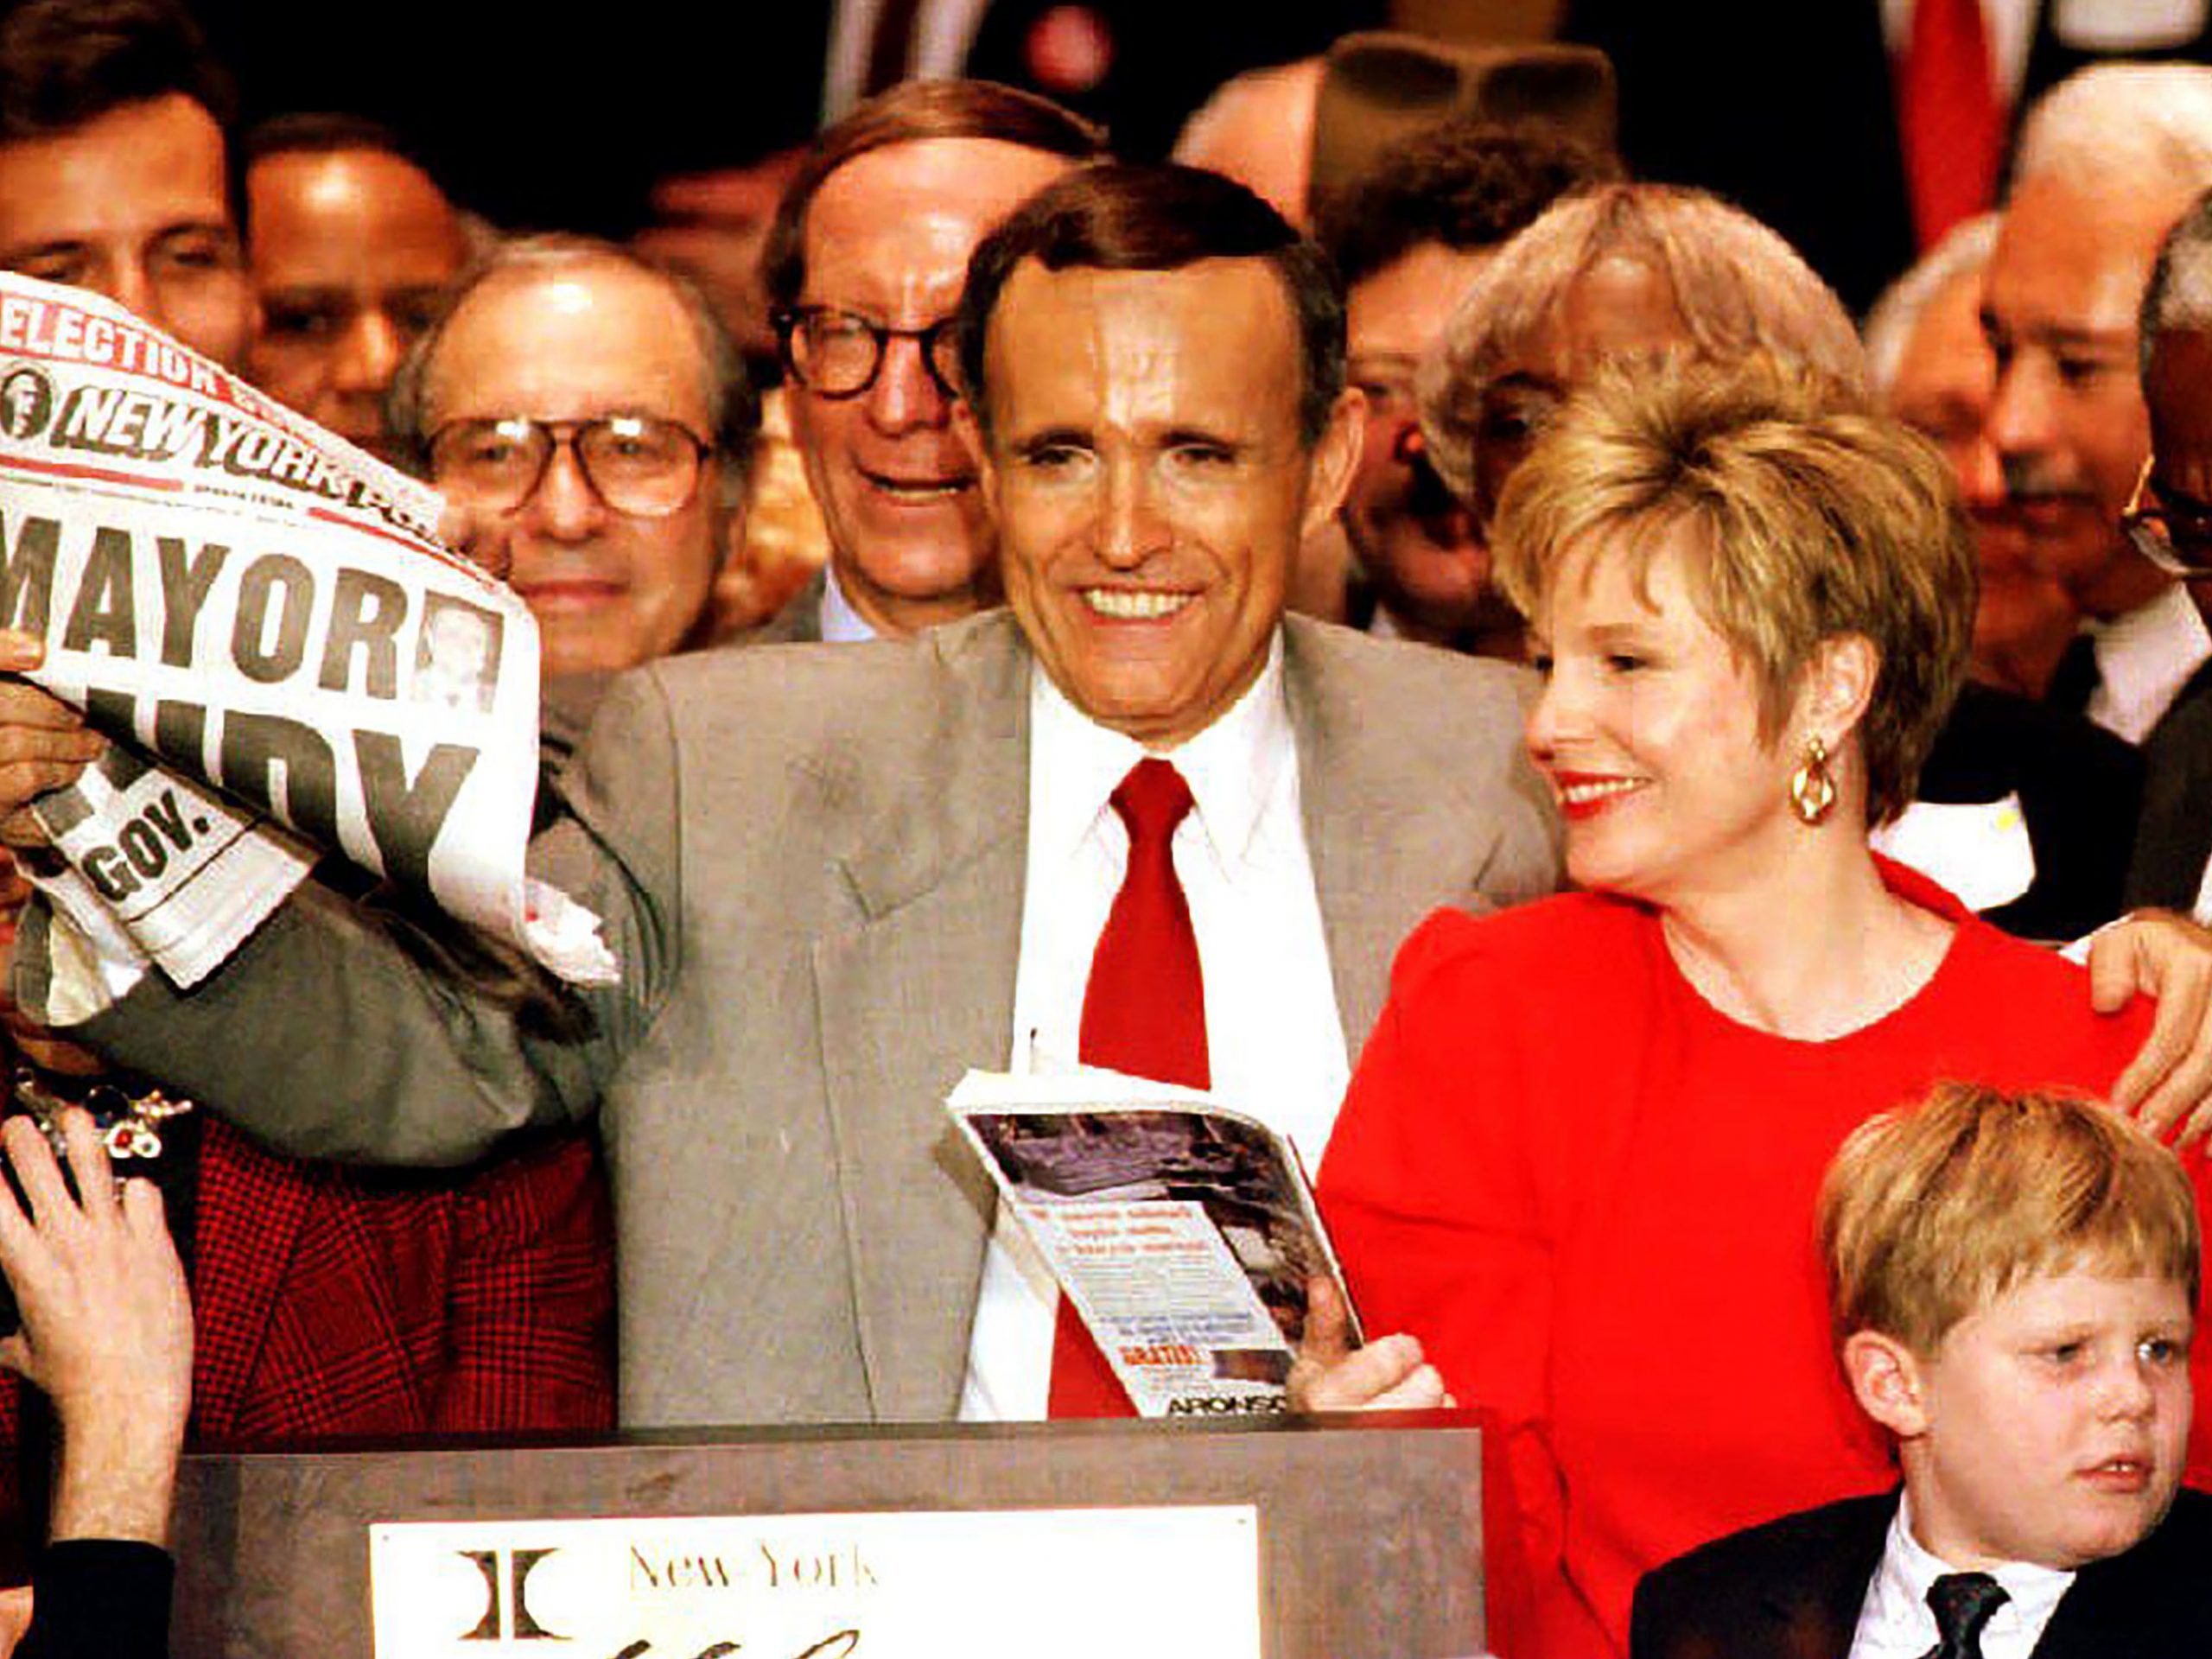 Mayor-elect Rudolph Giuliani holds a newspaper proclaiming him the mayor of New York after winning a tight race against Democratic incumbent David Dinkins in 1993.